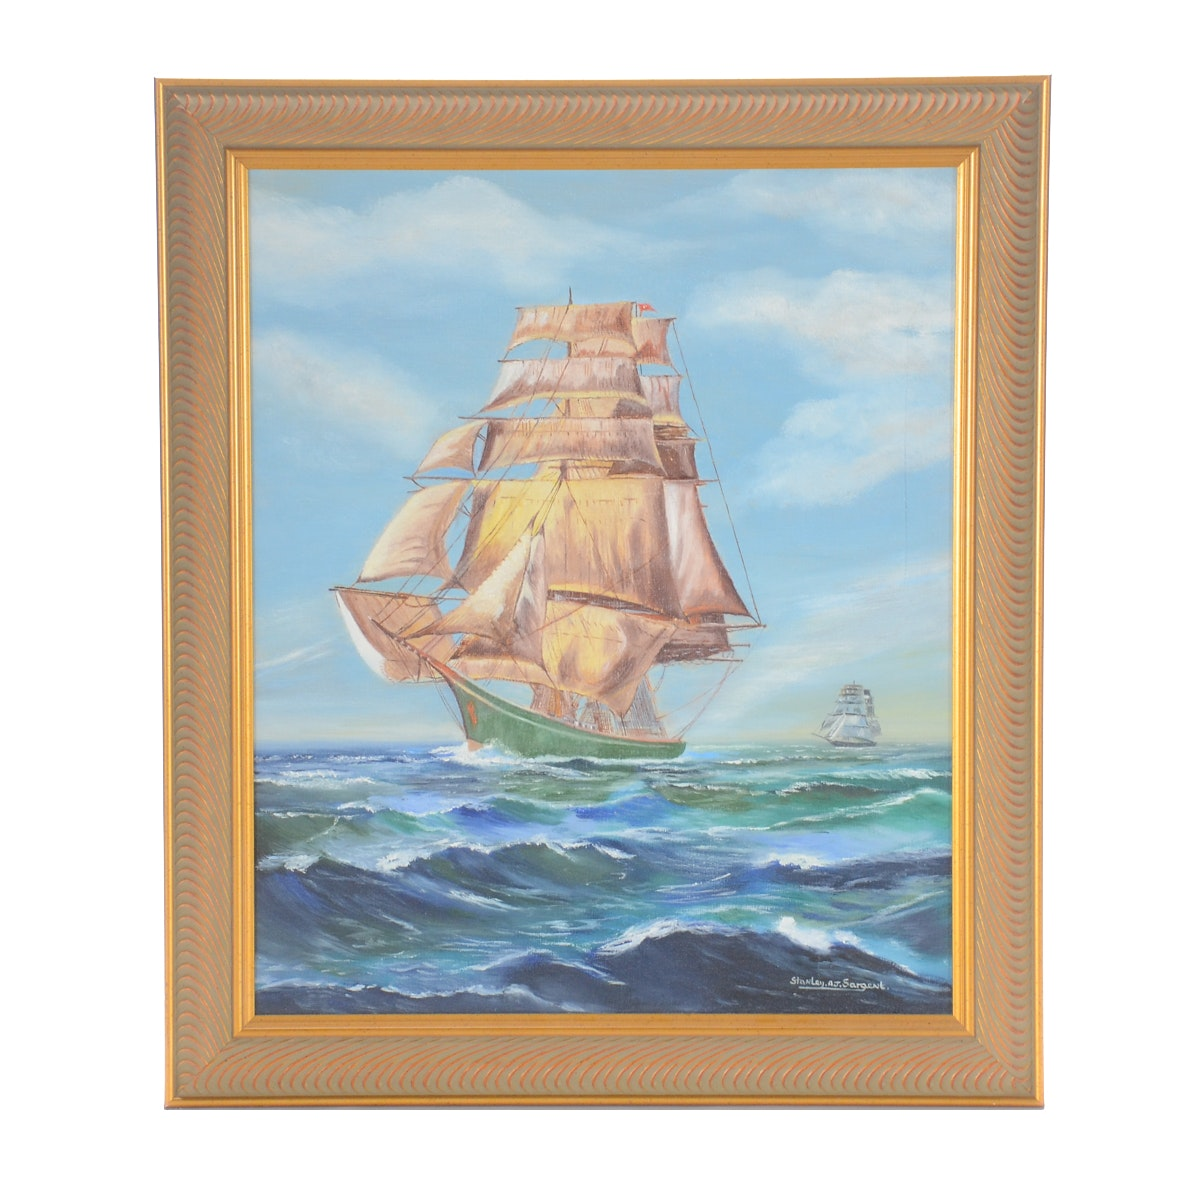 Stanley AJ Sargent Oil Painting on Canvas of Nautical Scene